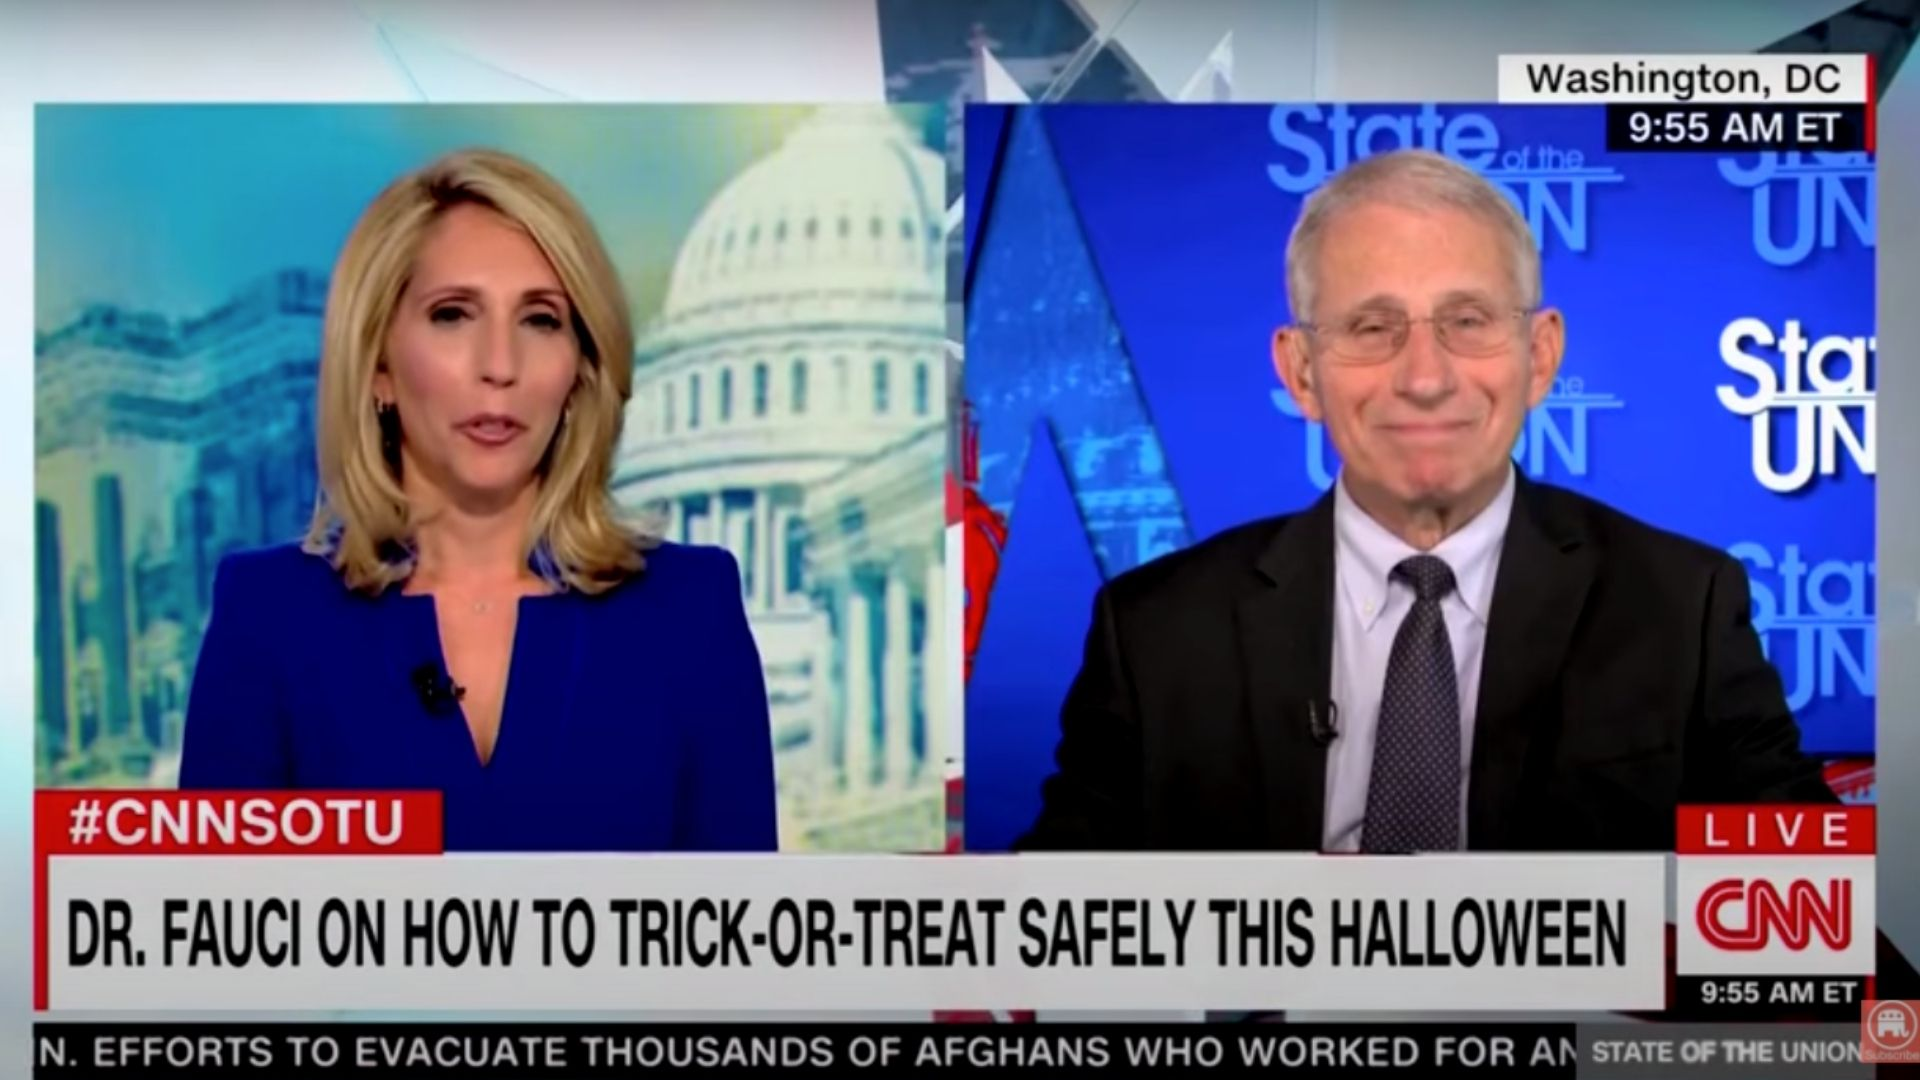 Fauci Says Halloween Is A Good Time To Think About Getting Vaccinated